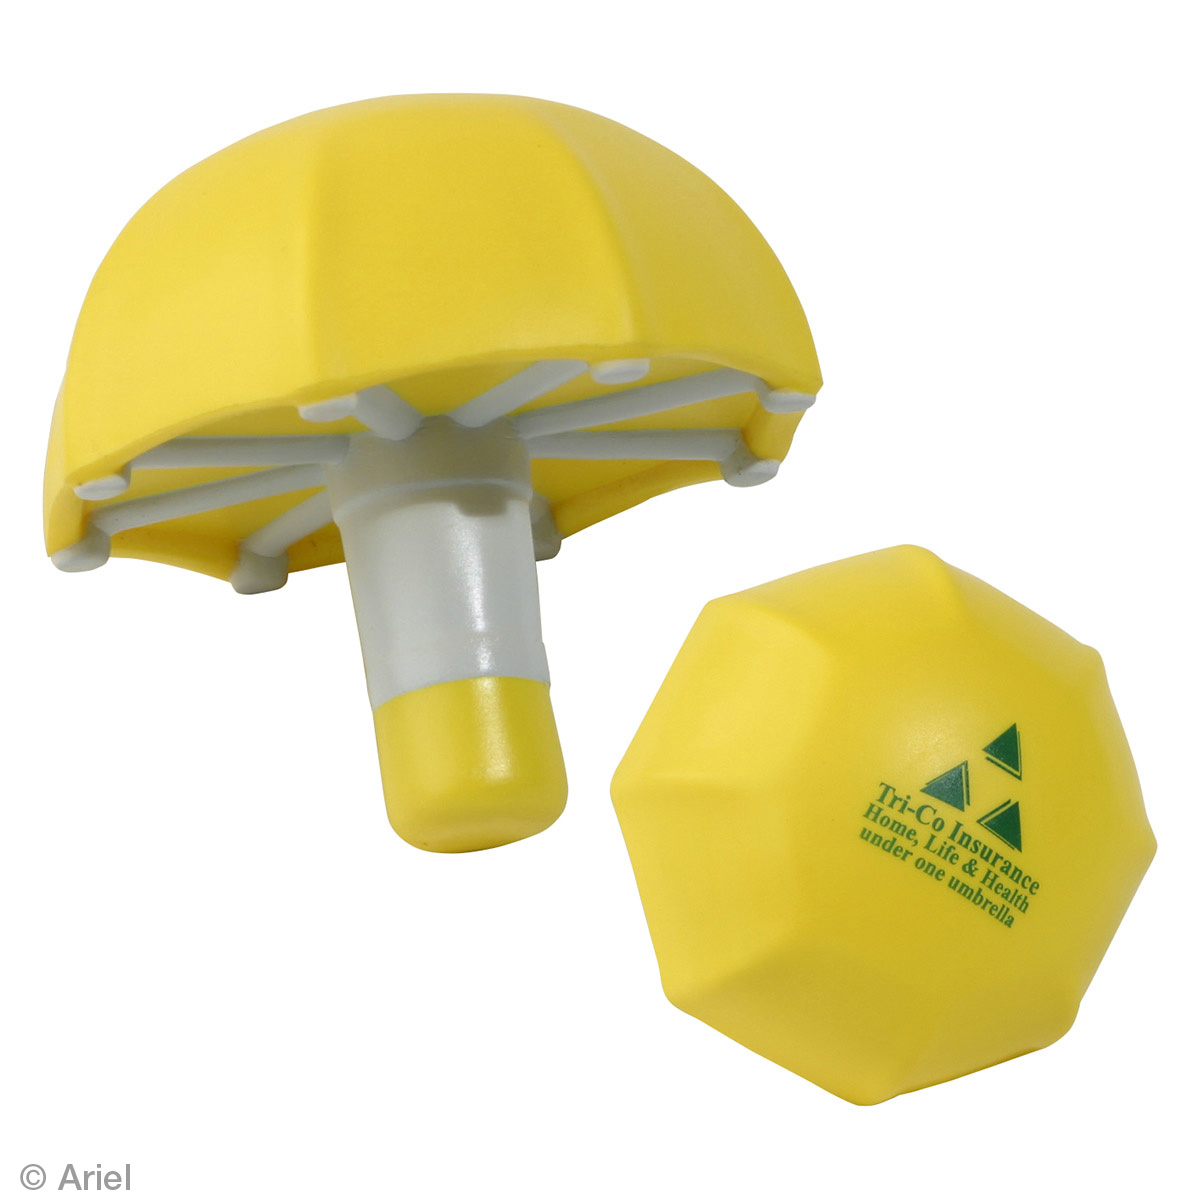 Umbrella Stress Reliever, LGS-UM01 - 1 Colour Imprint